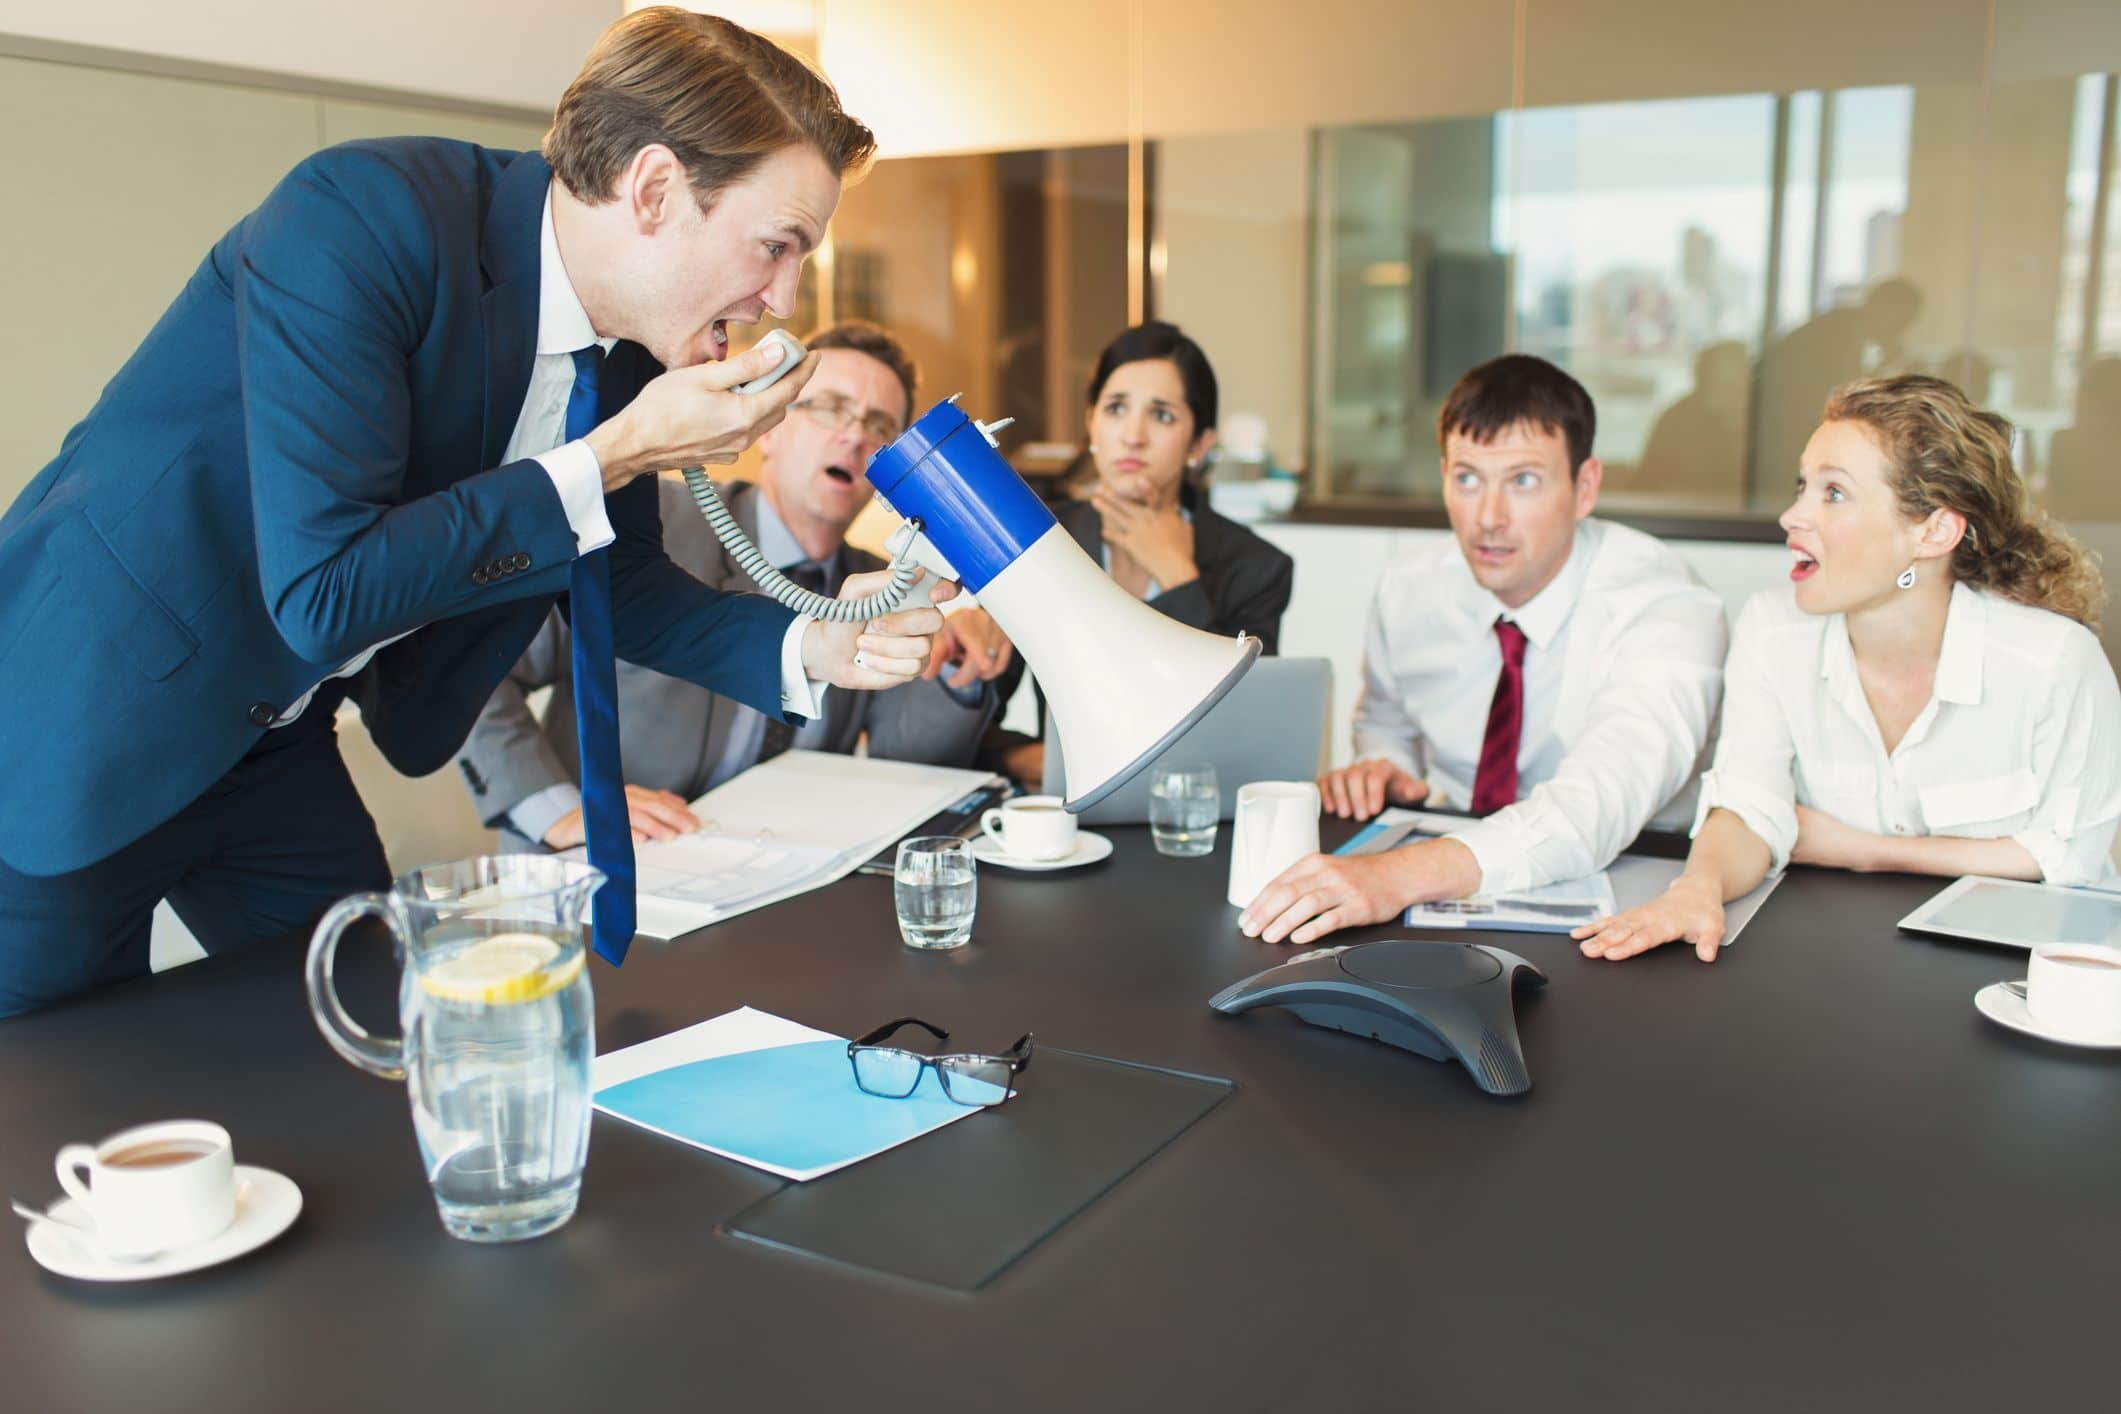 8 Ways To Improve The Quality Of Your Conference Calls